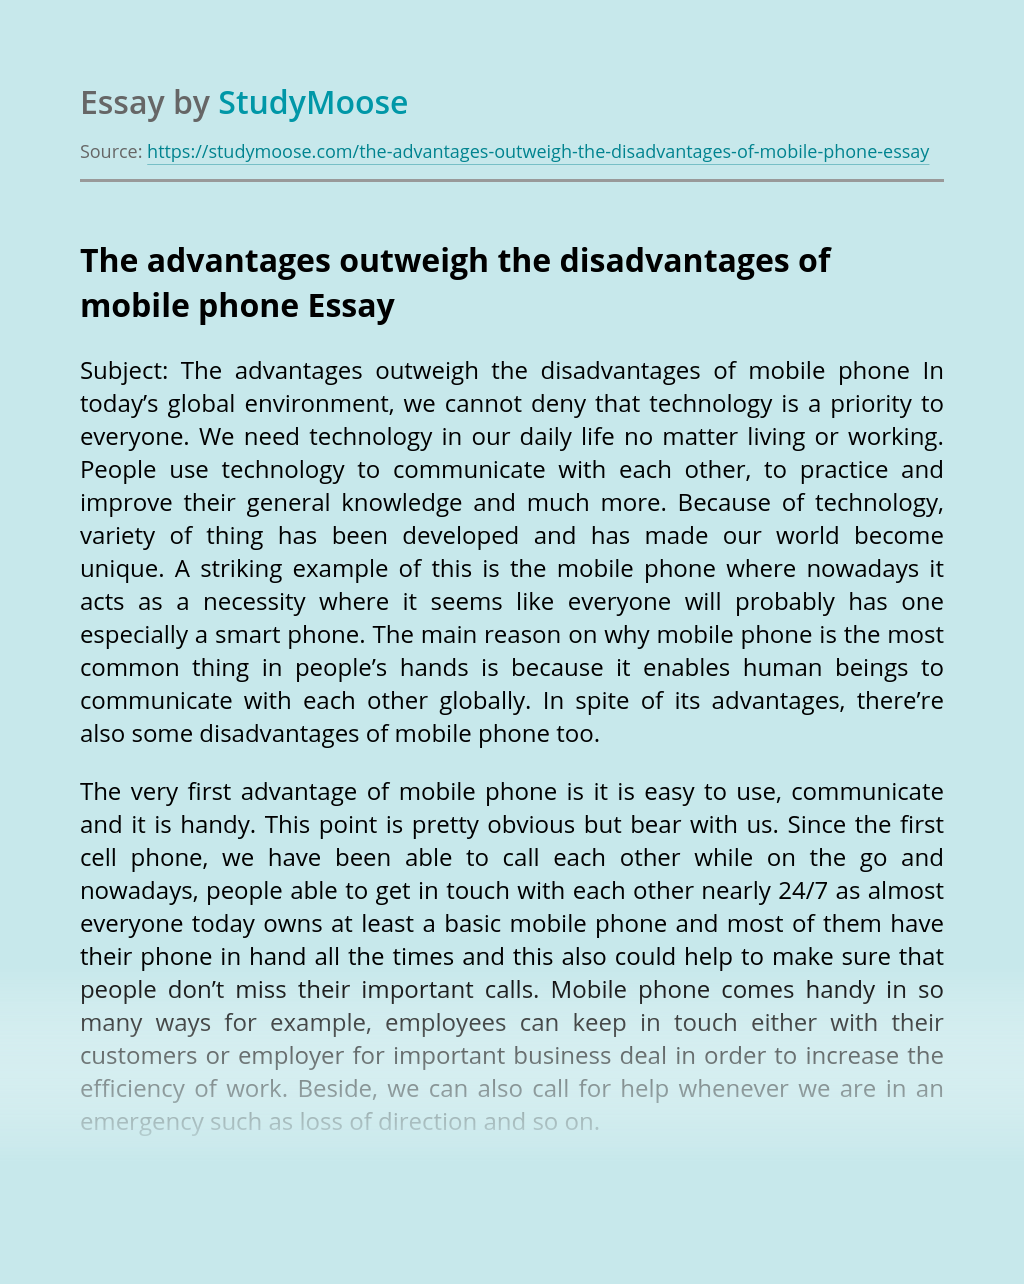 The advantages outweigh the disadvantages of mobile phone